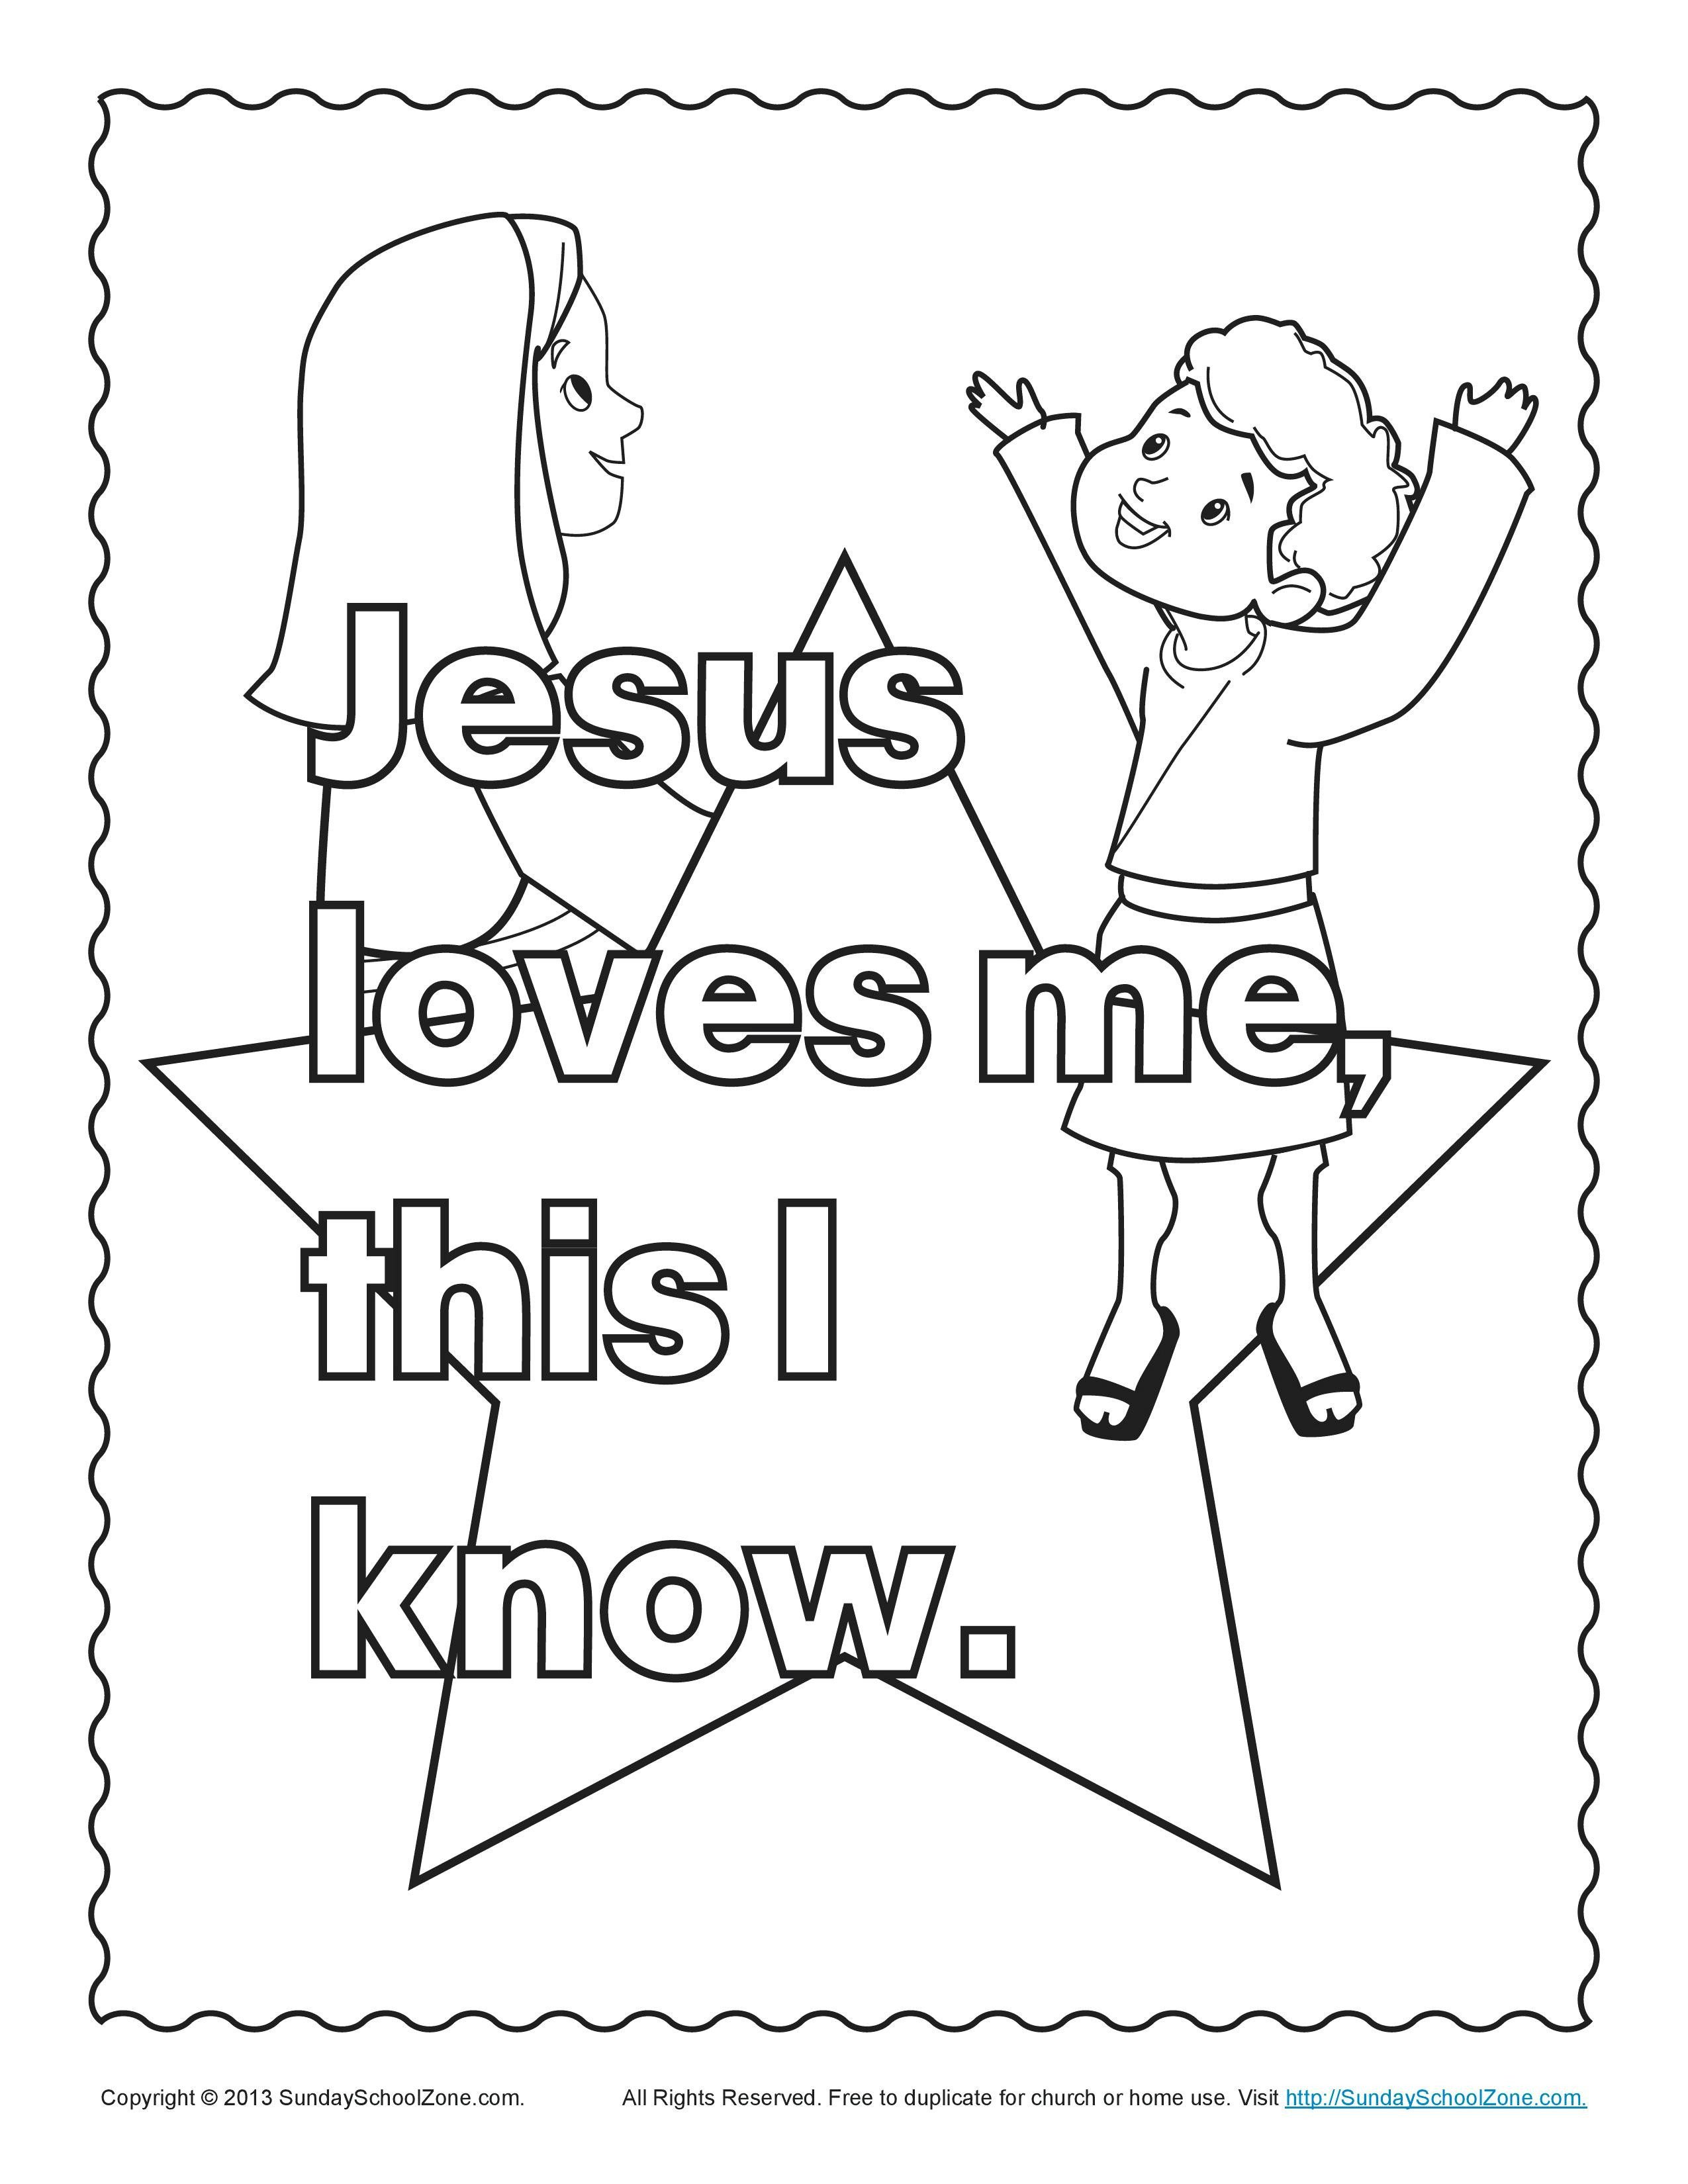 Bibles Study Coloring Sheets For Kids  Free Printable Bible Characters Free Clipart